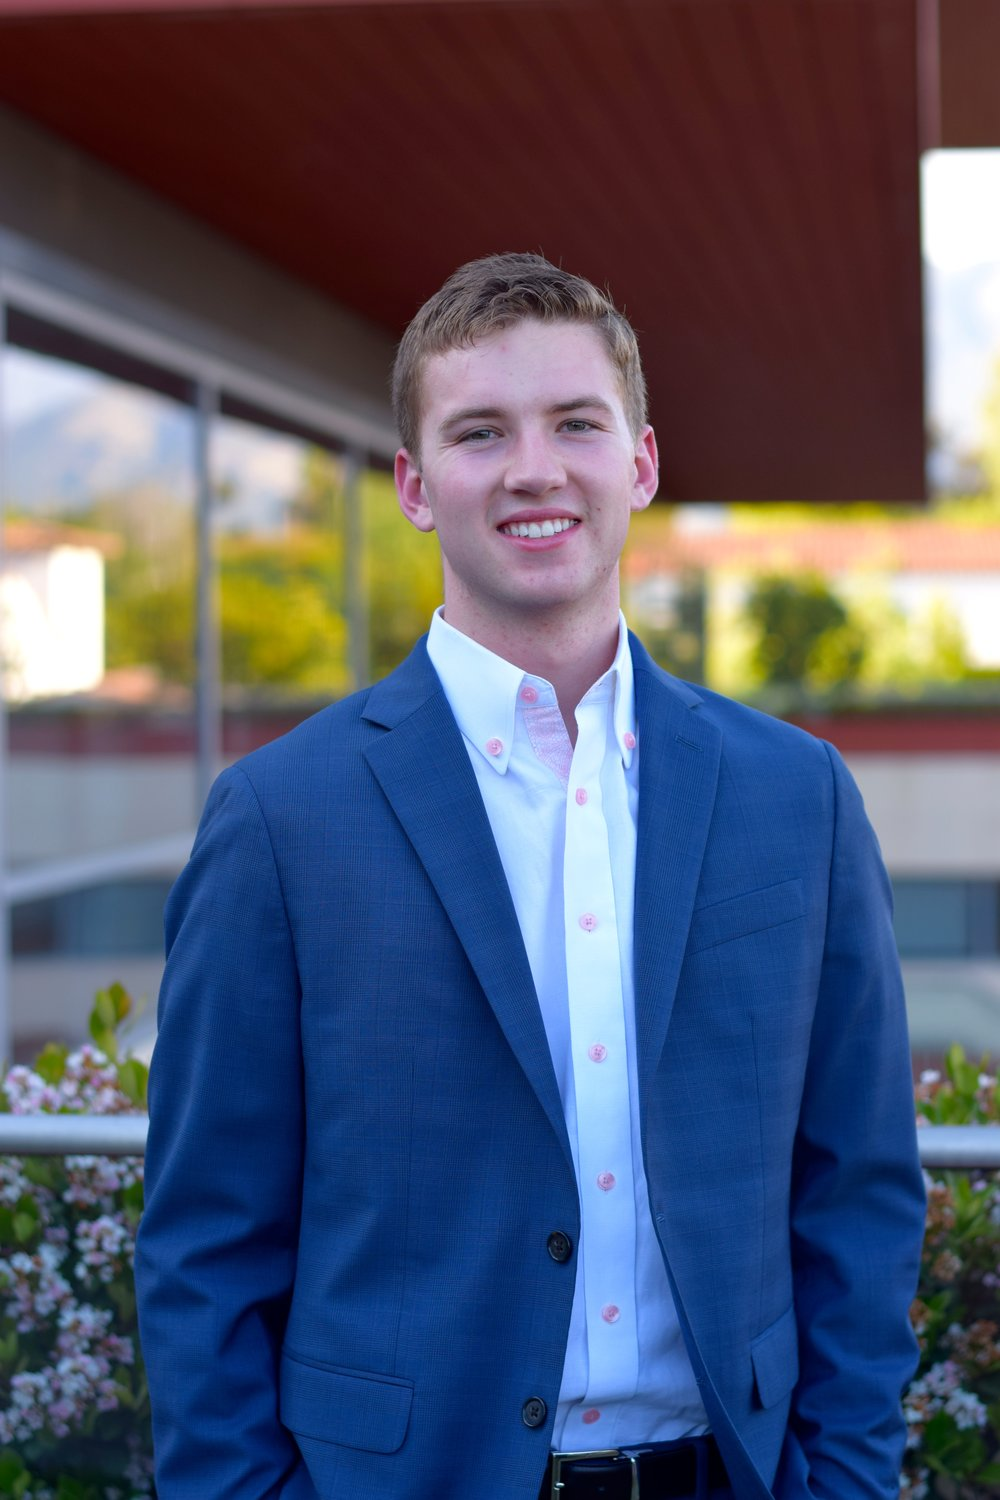 Patrick Hennessey - Class of 2019 President